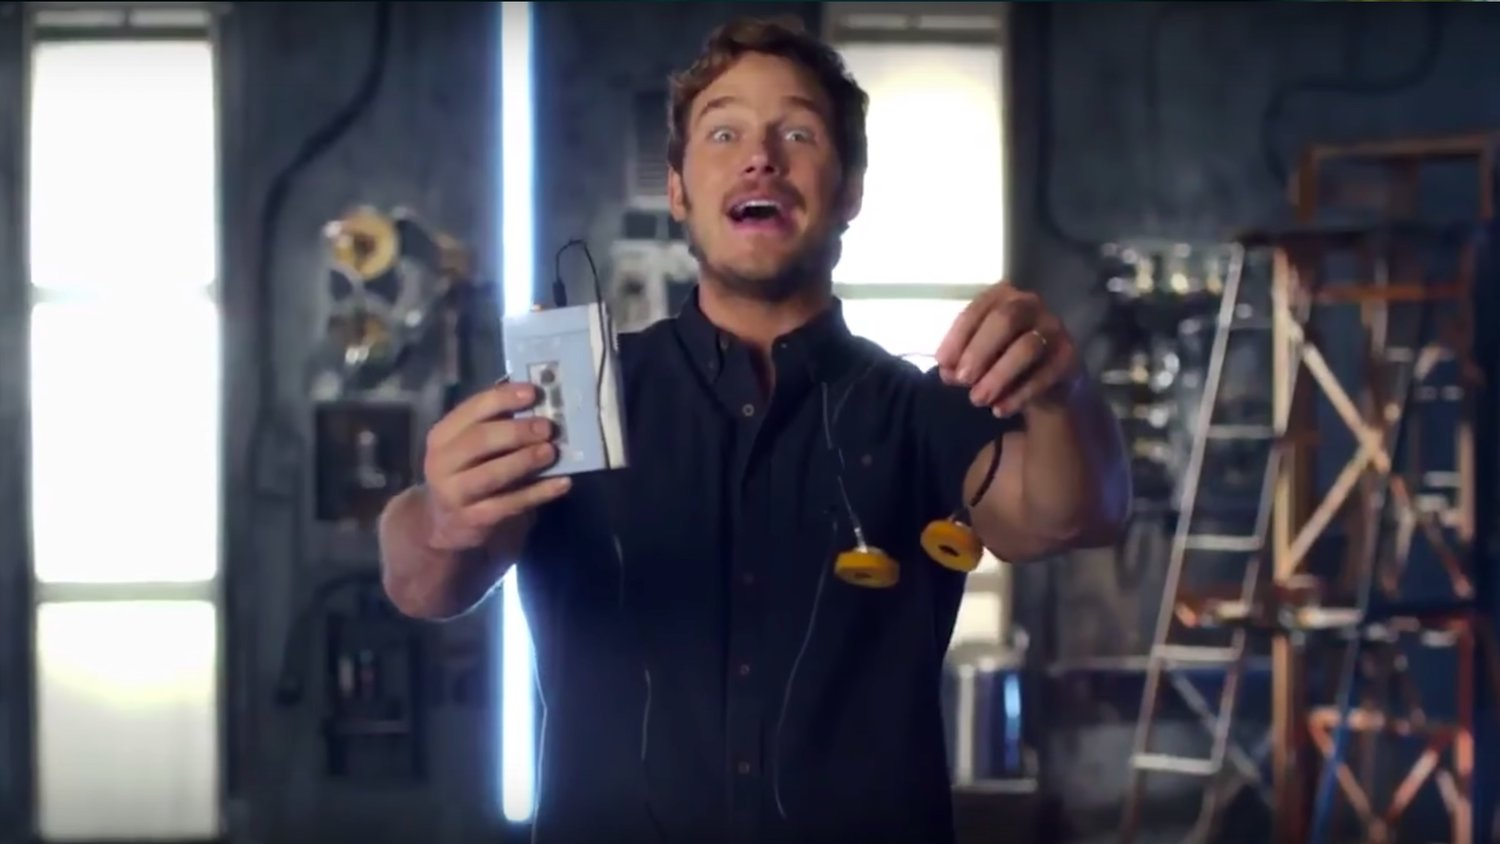 Chris Pratt Hilariously Explains What a Walkman is in GUARDIANS OF THE GALAXY VOL. 2 Promo